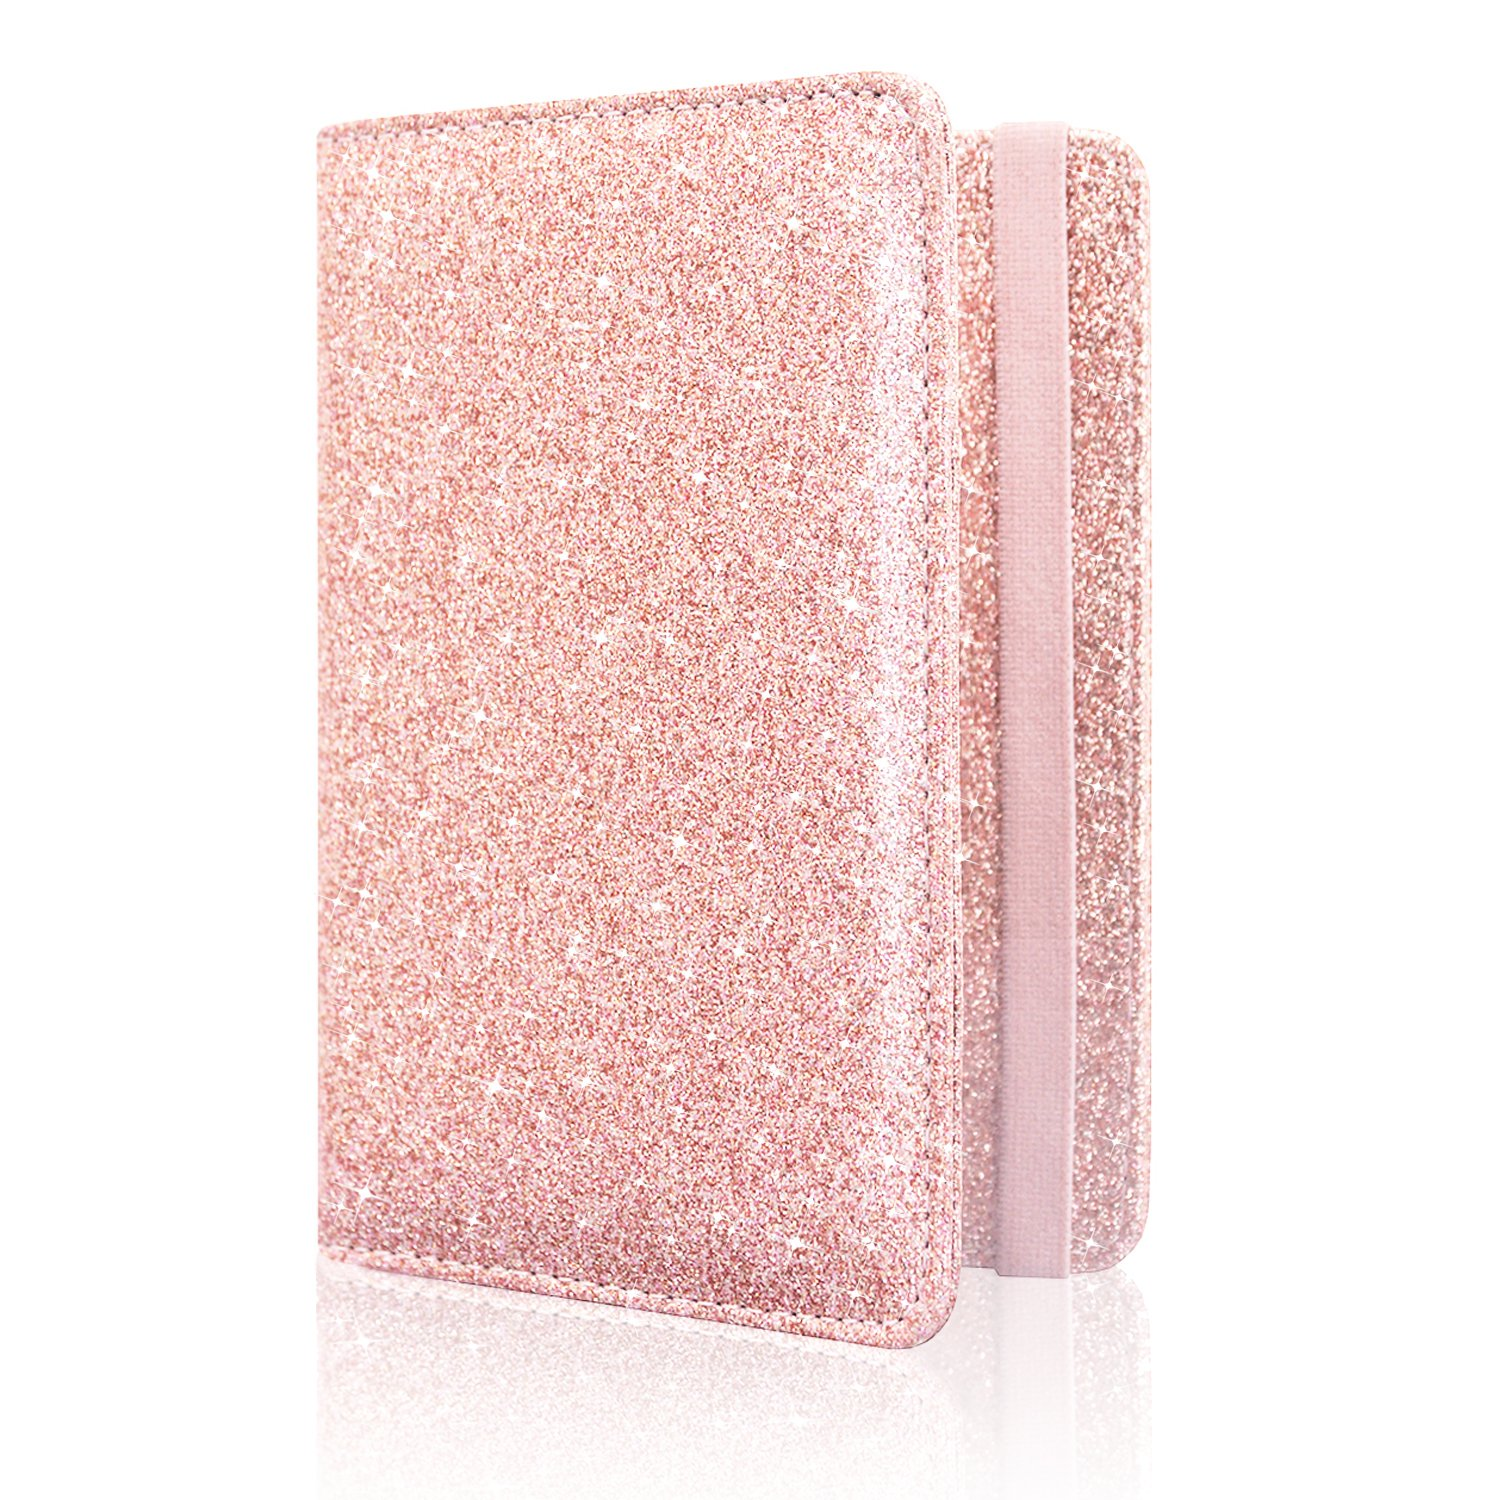 Passport Holder Cover, ACdream Travel Leather RFID Blocking Case Wallet for Passport with Elastic Band Closure, Rose Gold Glitter by ACdream (Image #5)